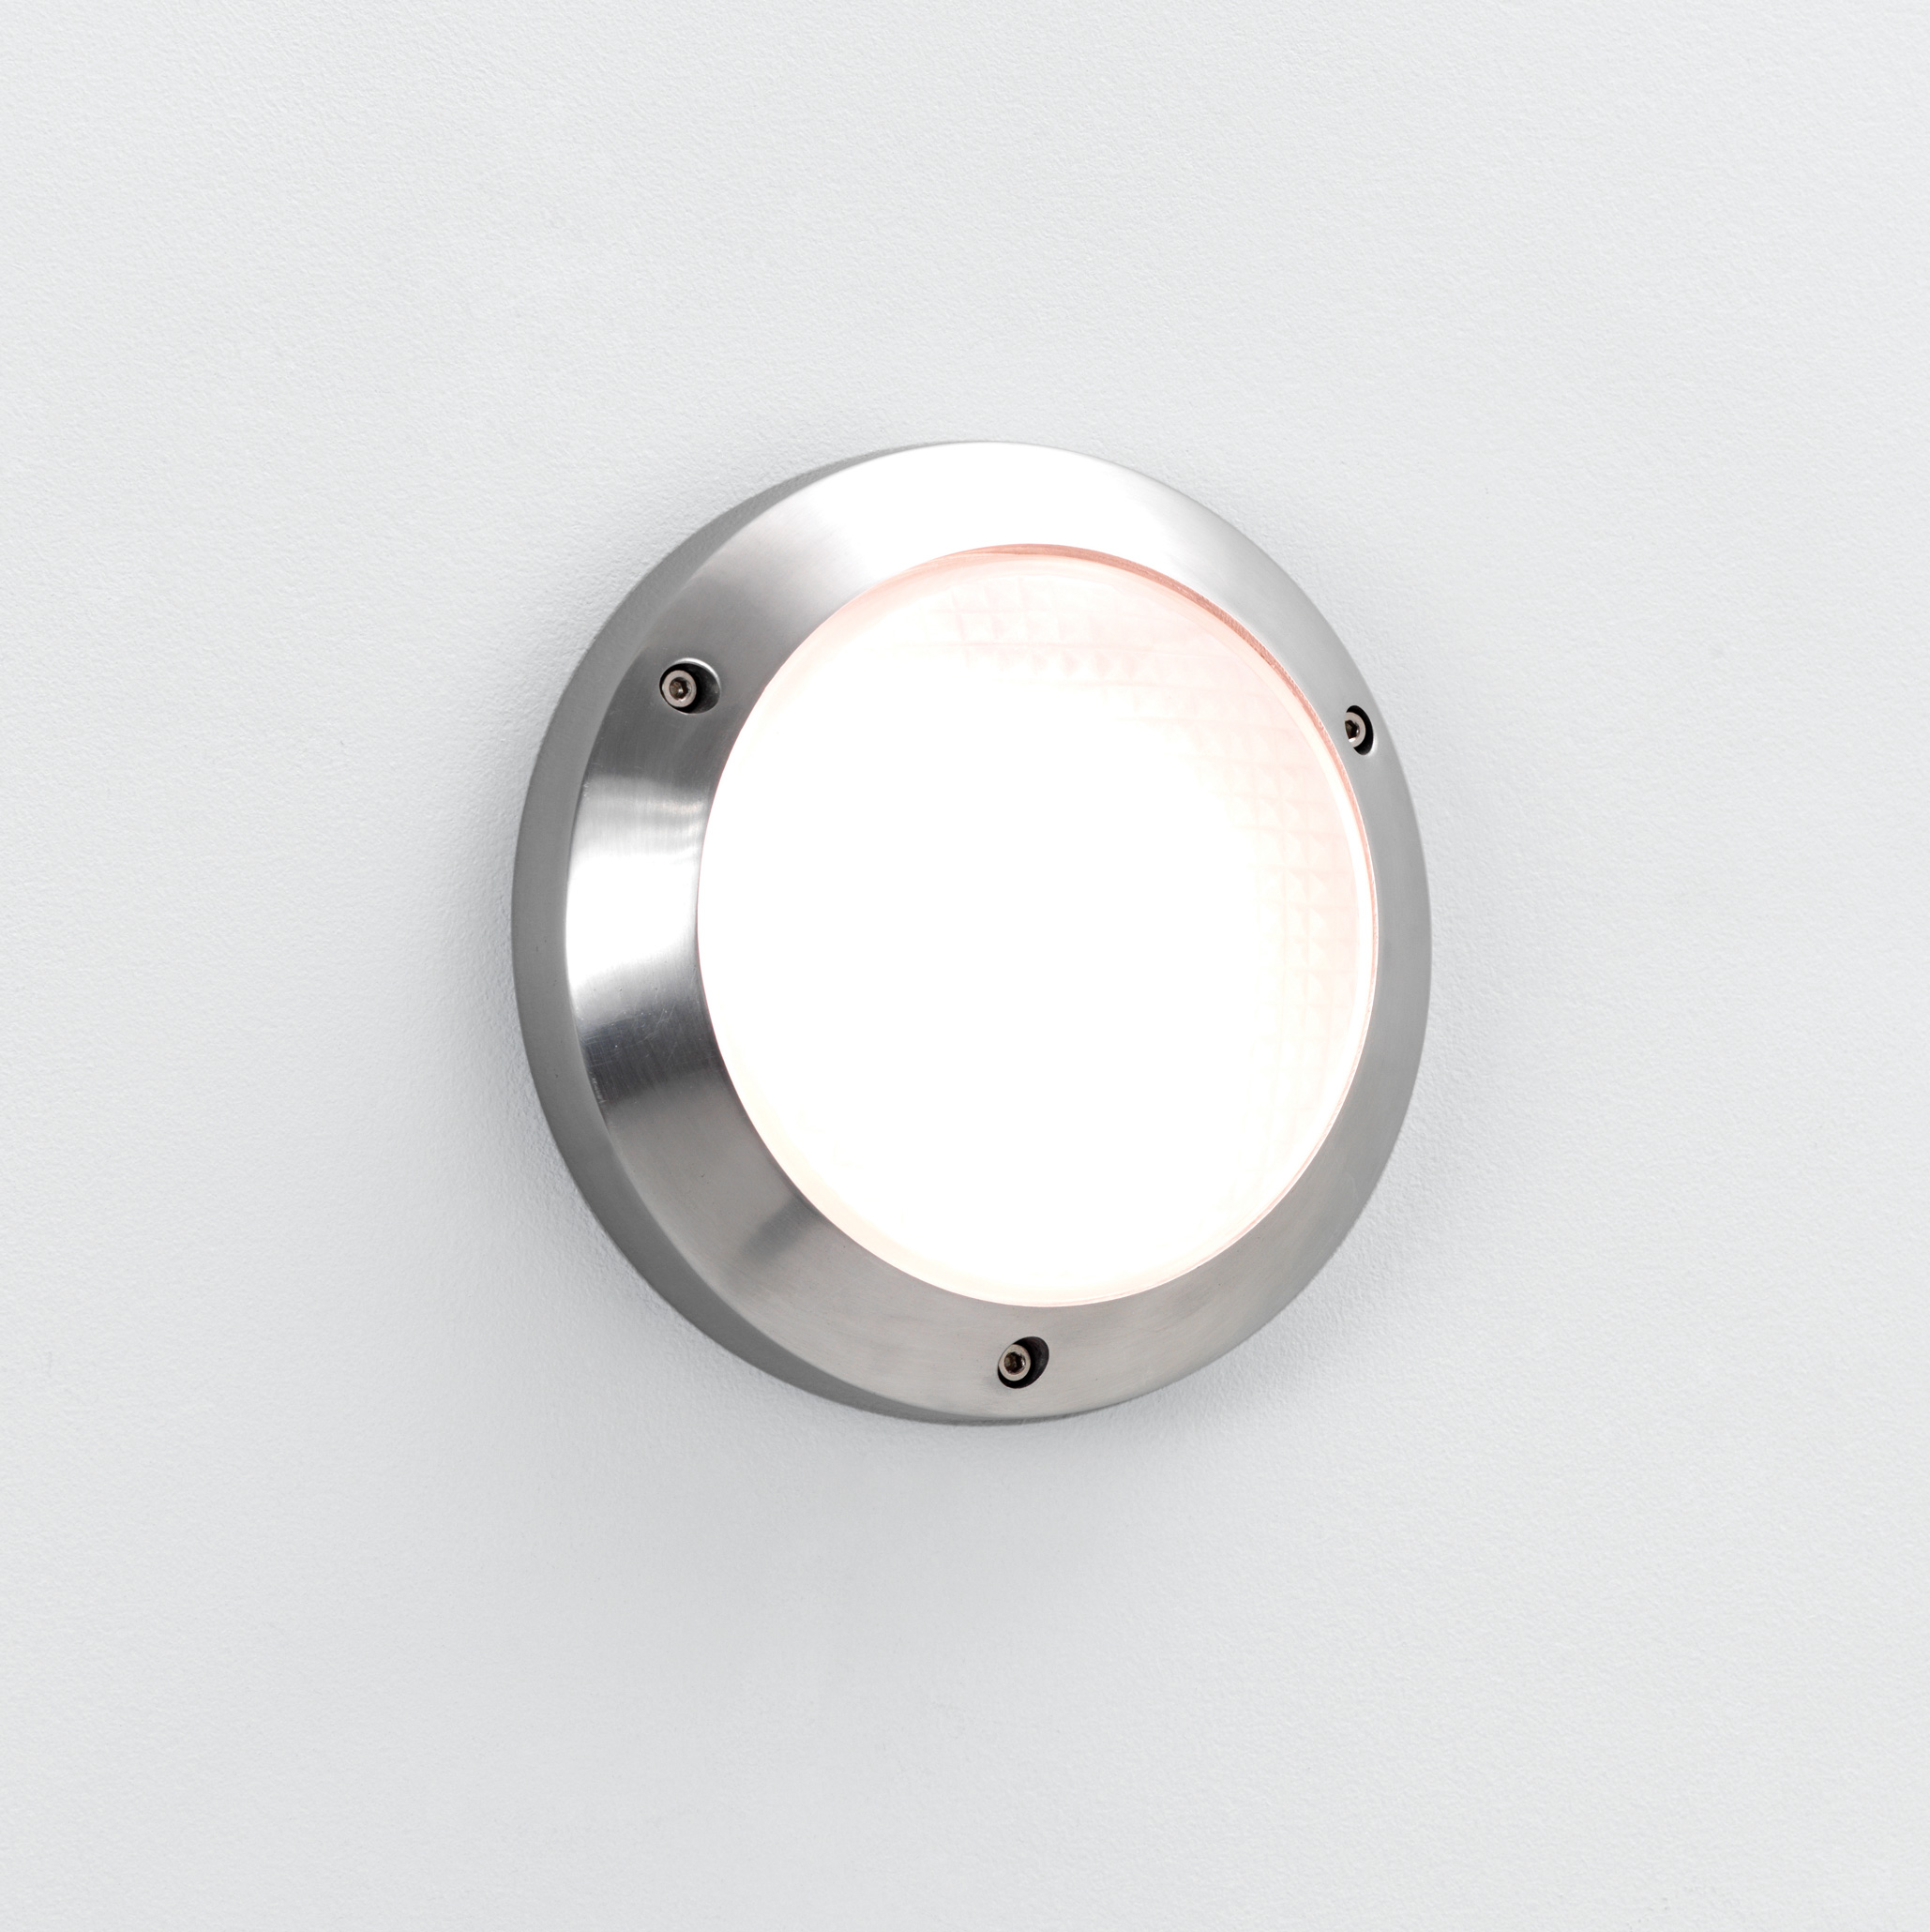 round bathroom light astro toronto plus 170 0604 bathroom wall light 1 x 14253